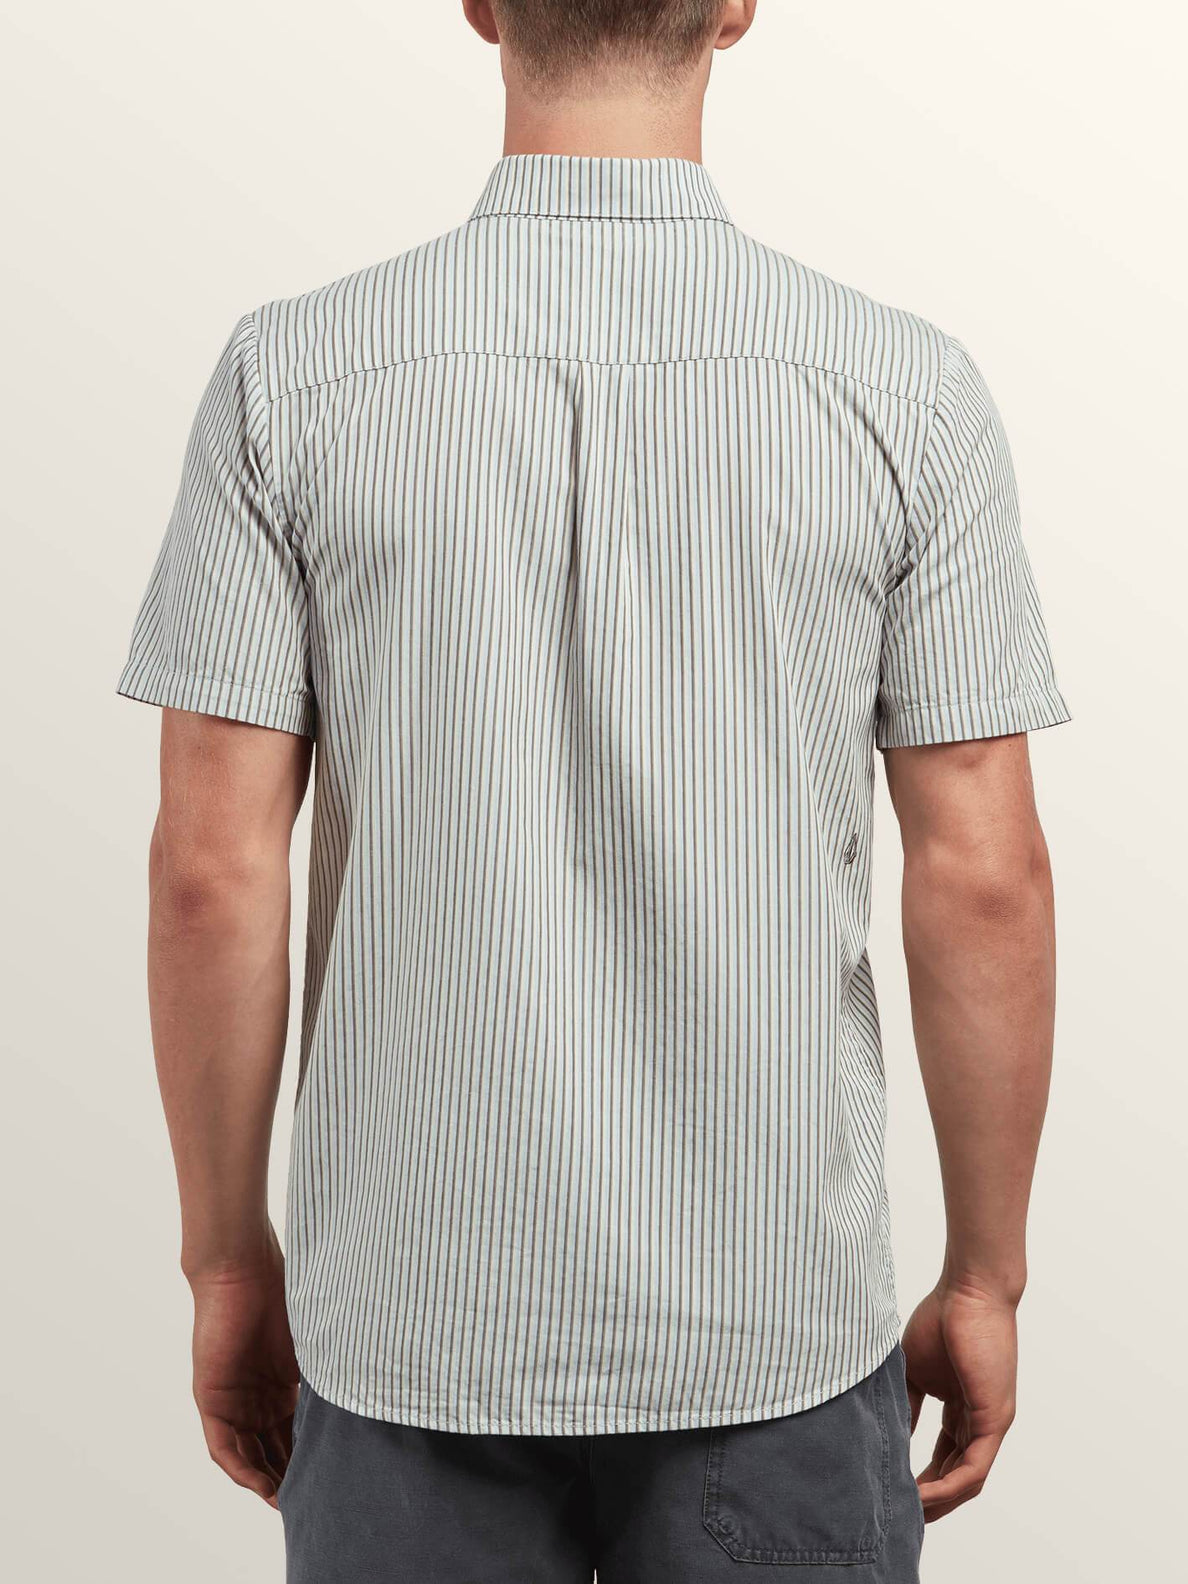 Mix Bag Short Sleeve Shirt In Mist Green, Back View